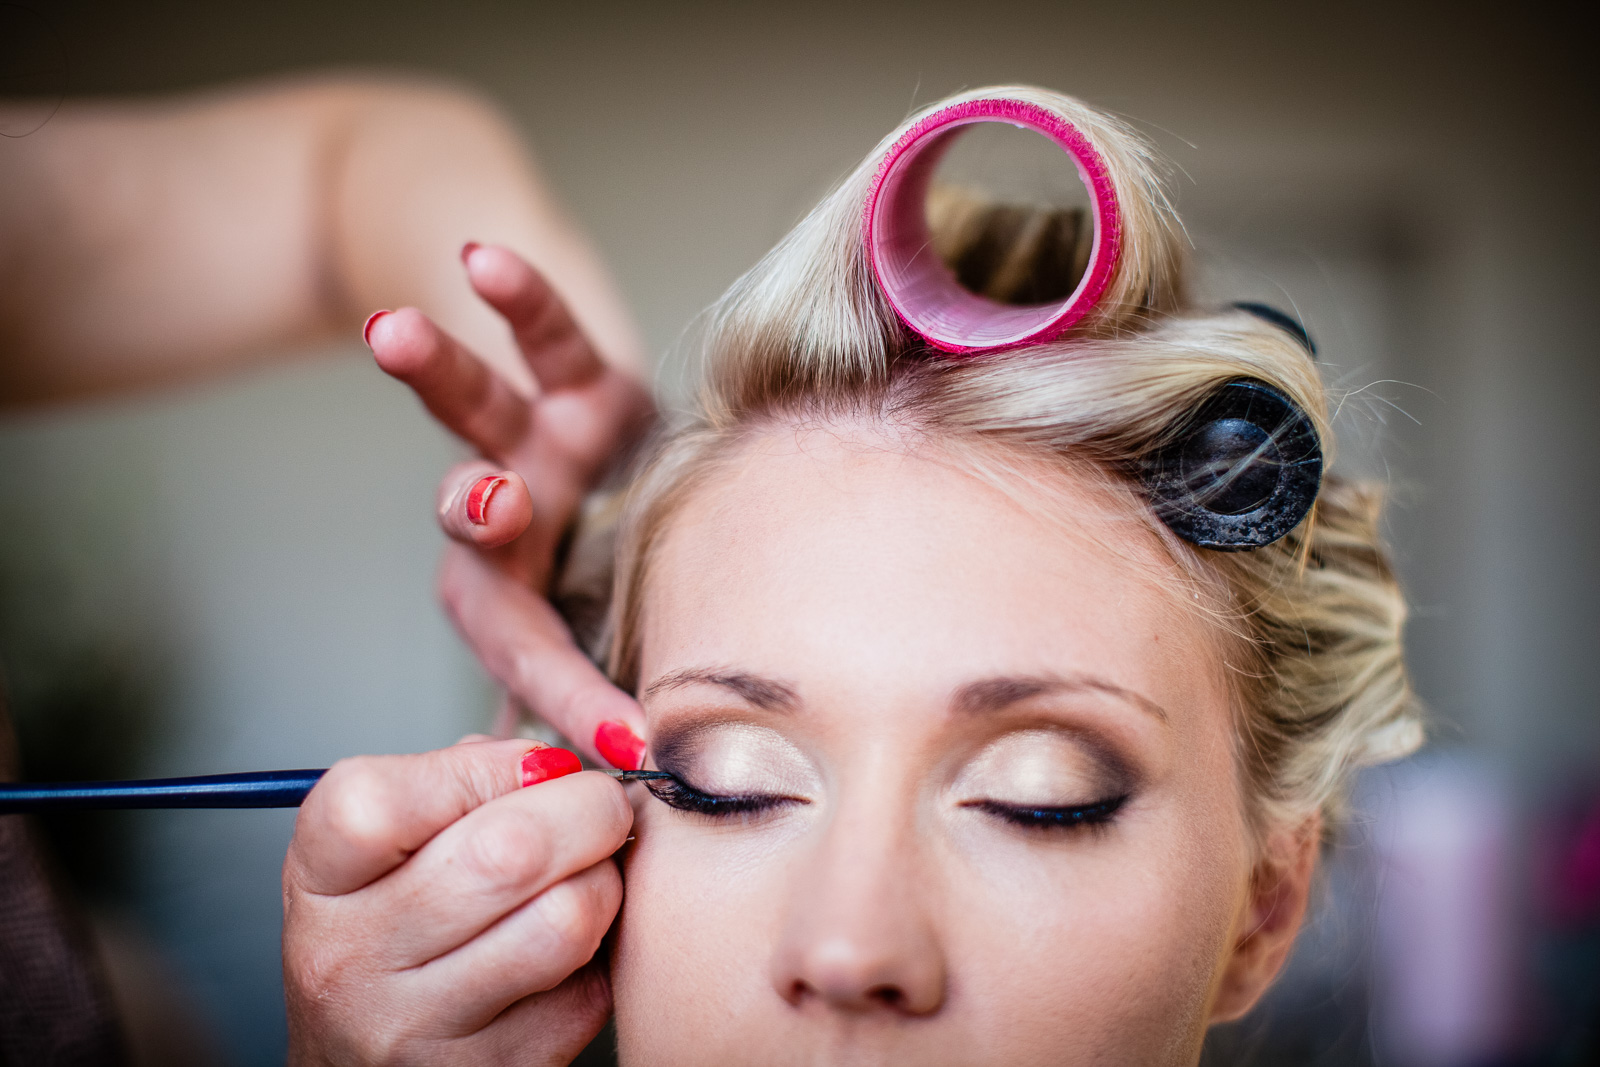 hair in rollers and makeup artist putting on brides eyelashes - shropshire wedding photographer